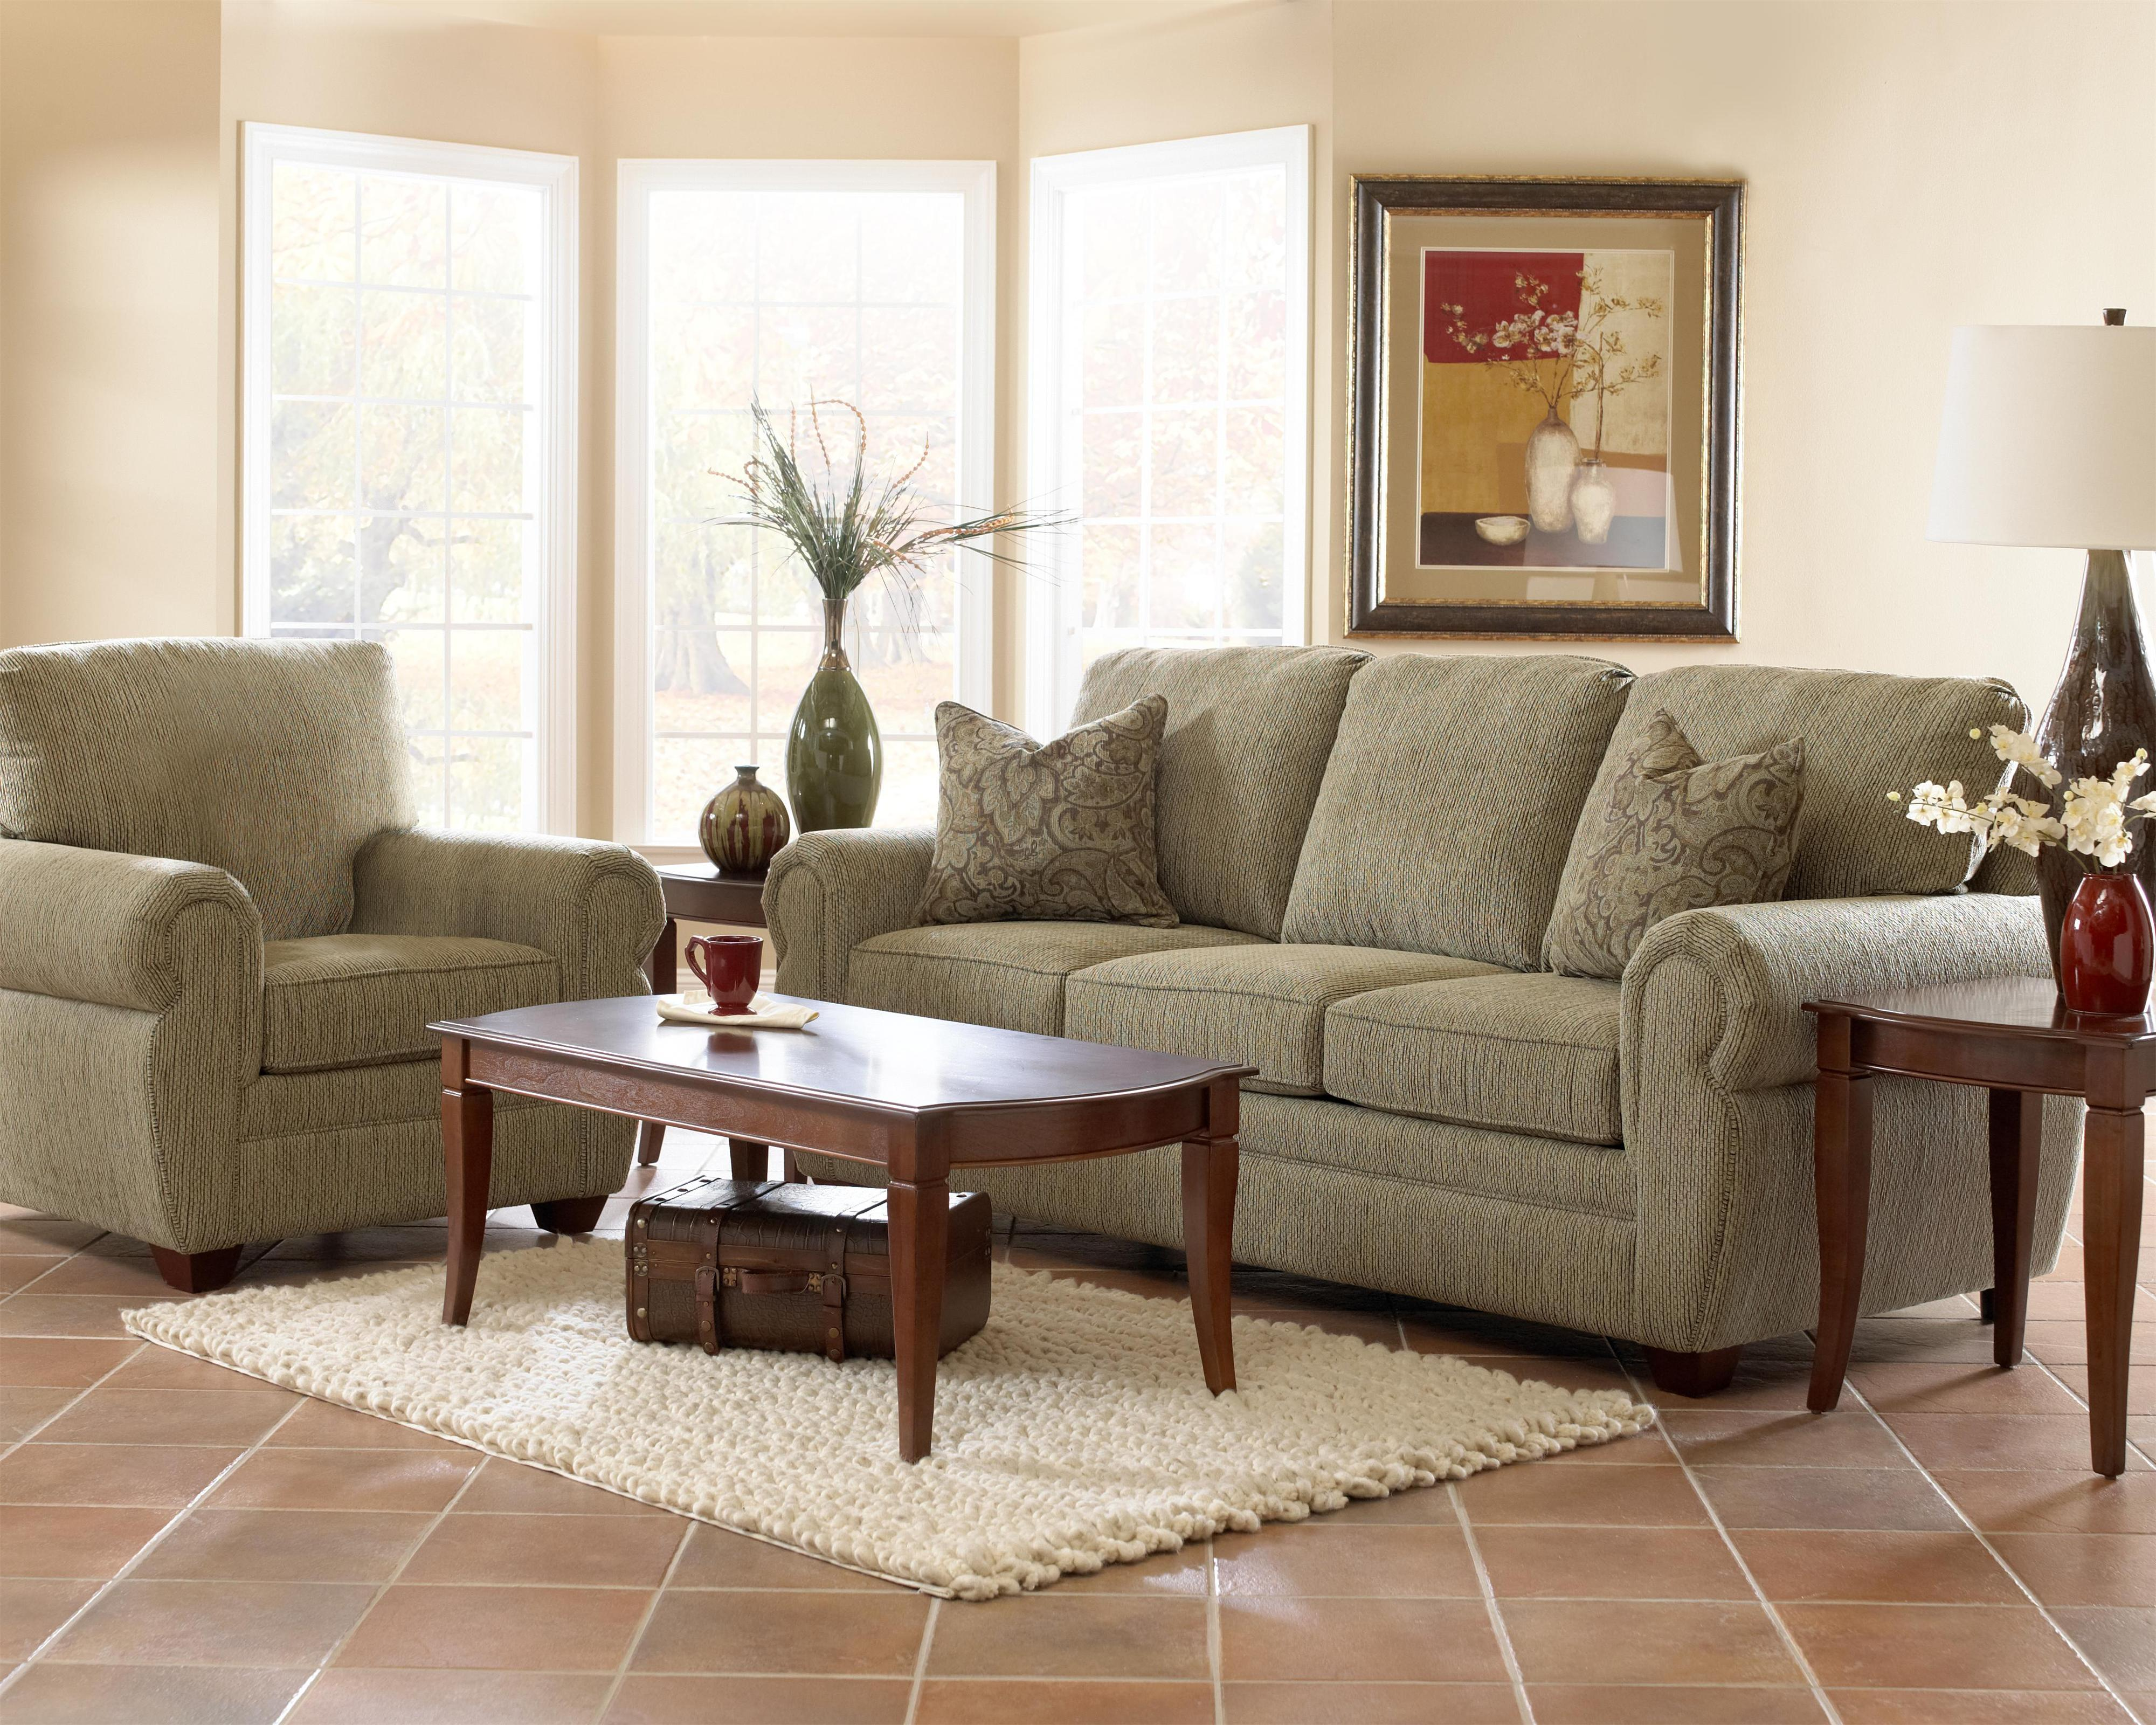 Klaussner Westbrook Stationary Living Room Group Value City Furniture Stationary Living Room